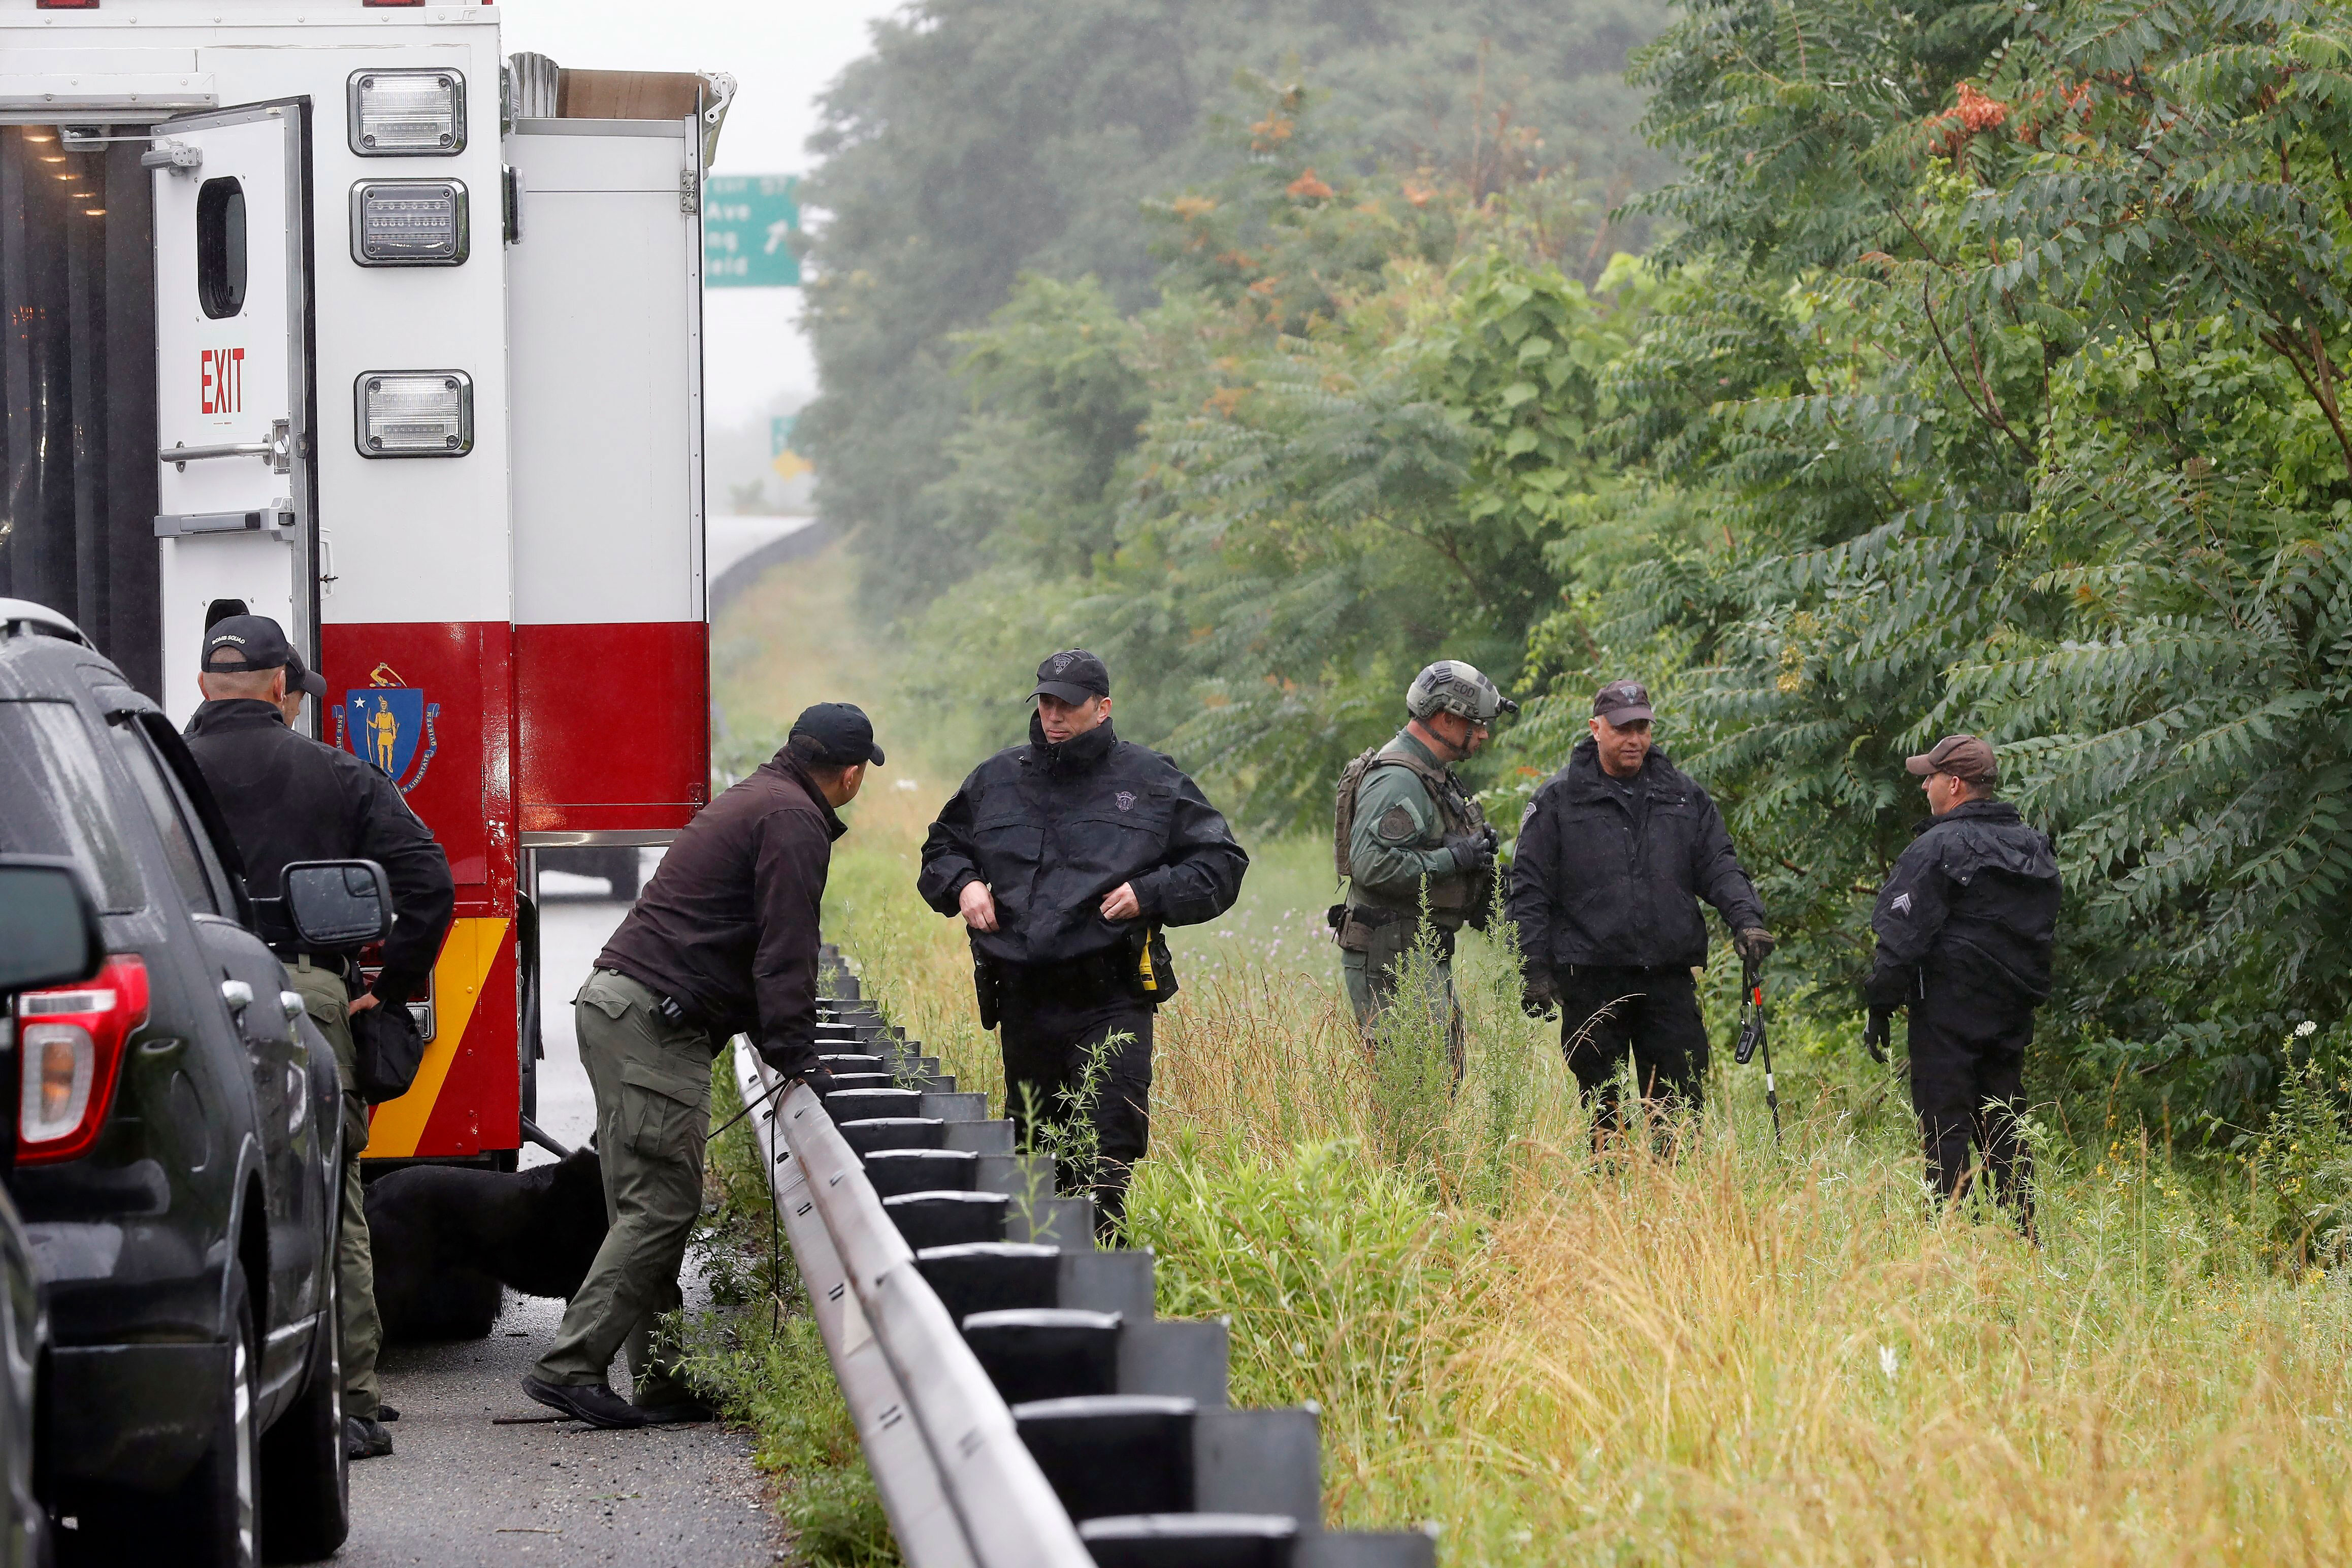 Authorities charge 11 people involved in a standoff with Massachusetts police